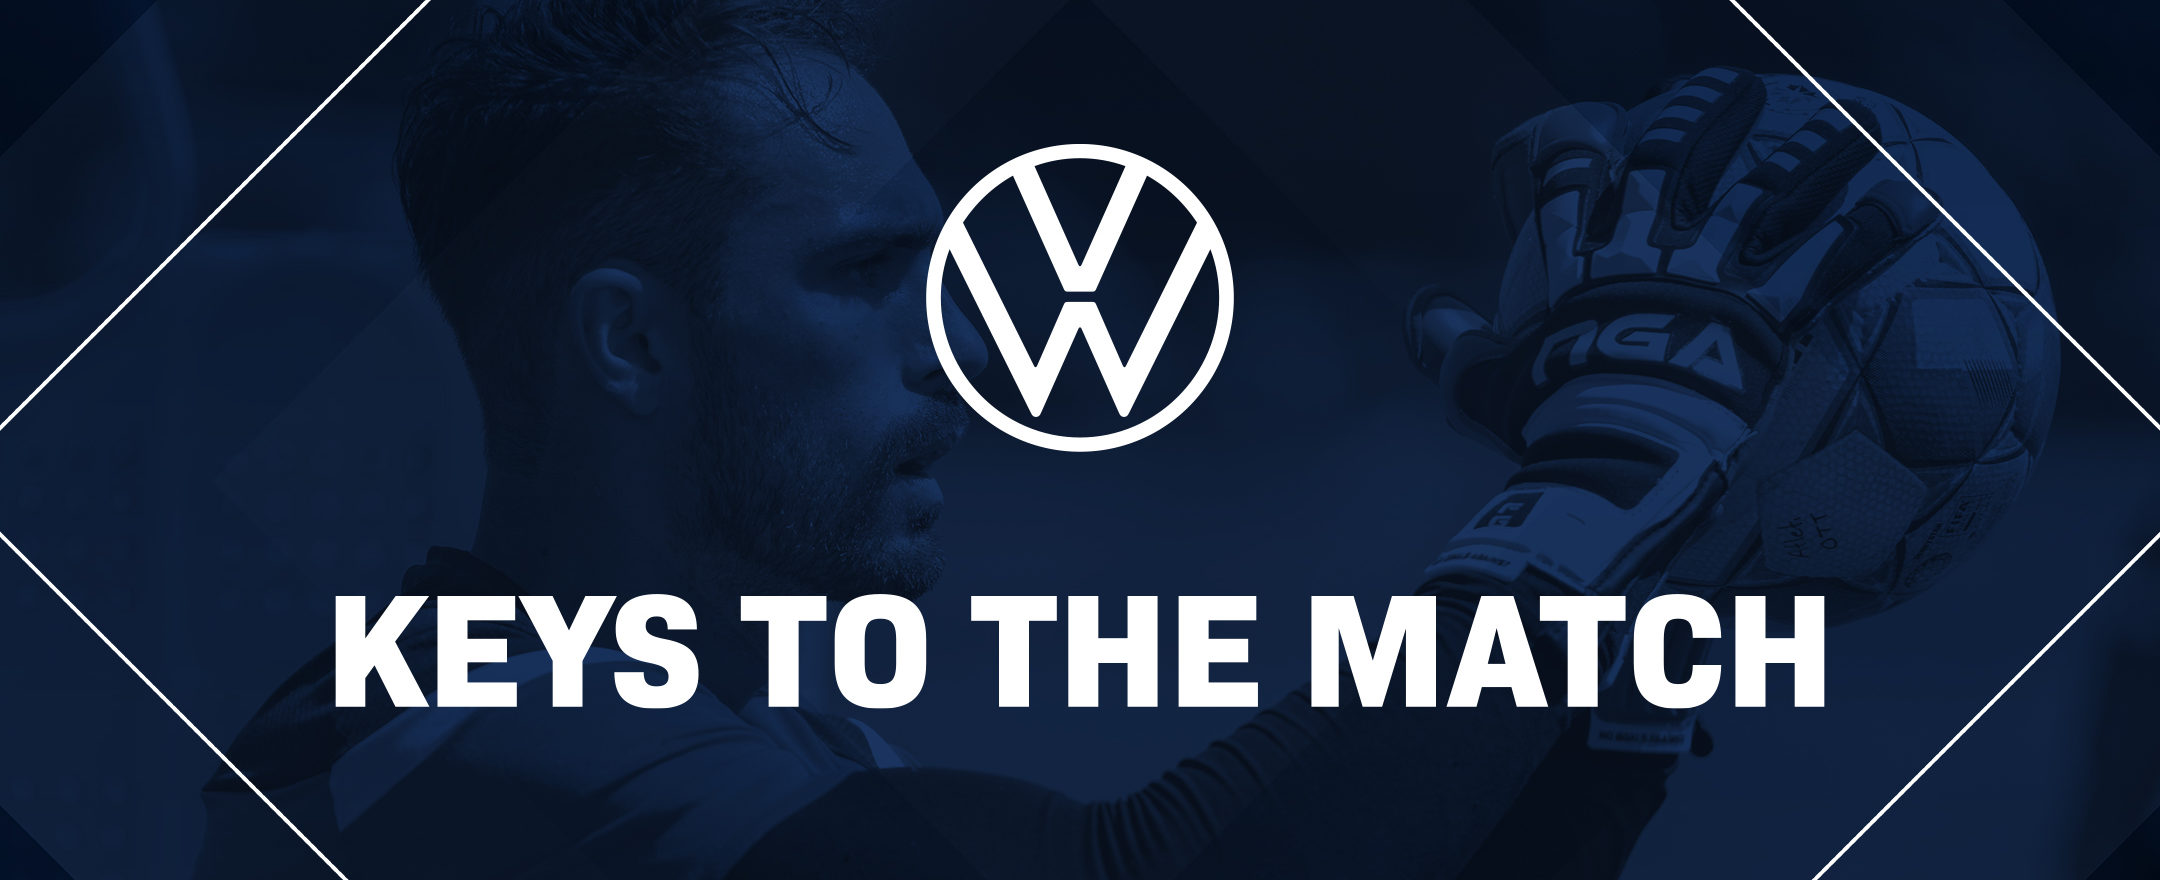 Volkswagen Keys to the Match (presented on OneSoccer before kick-off).